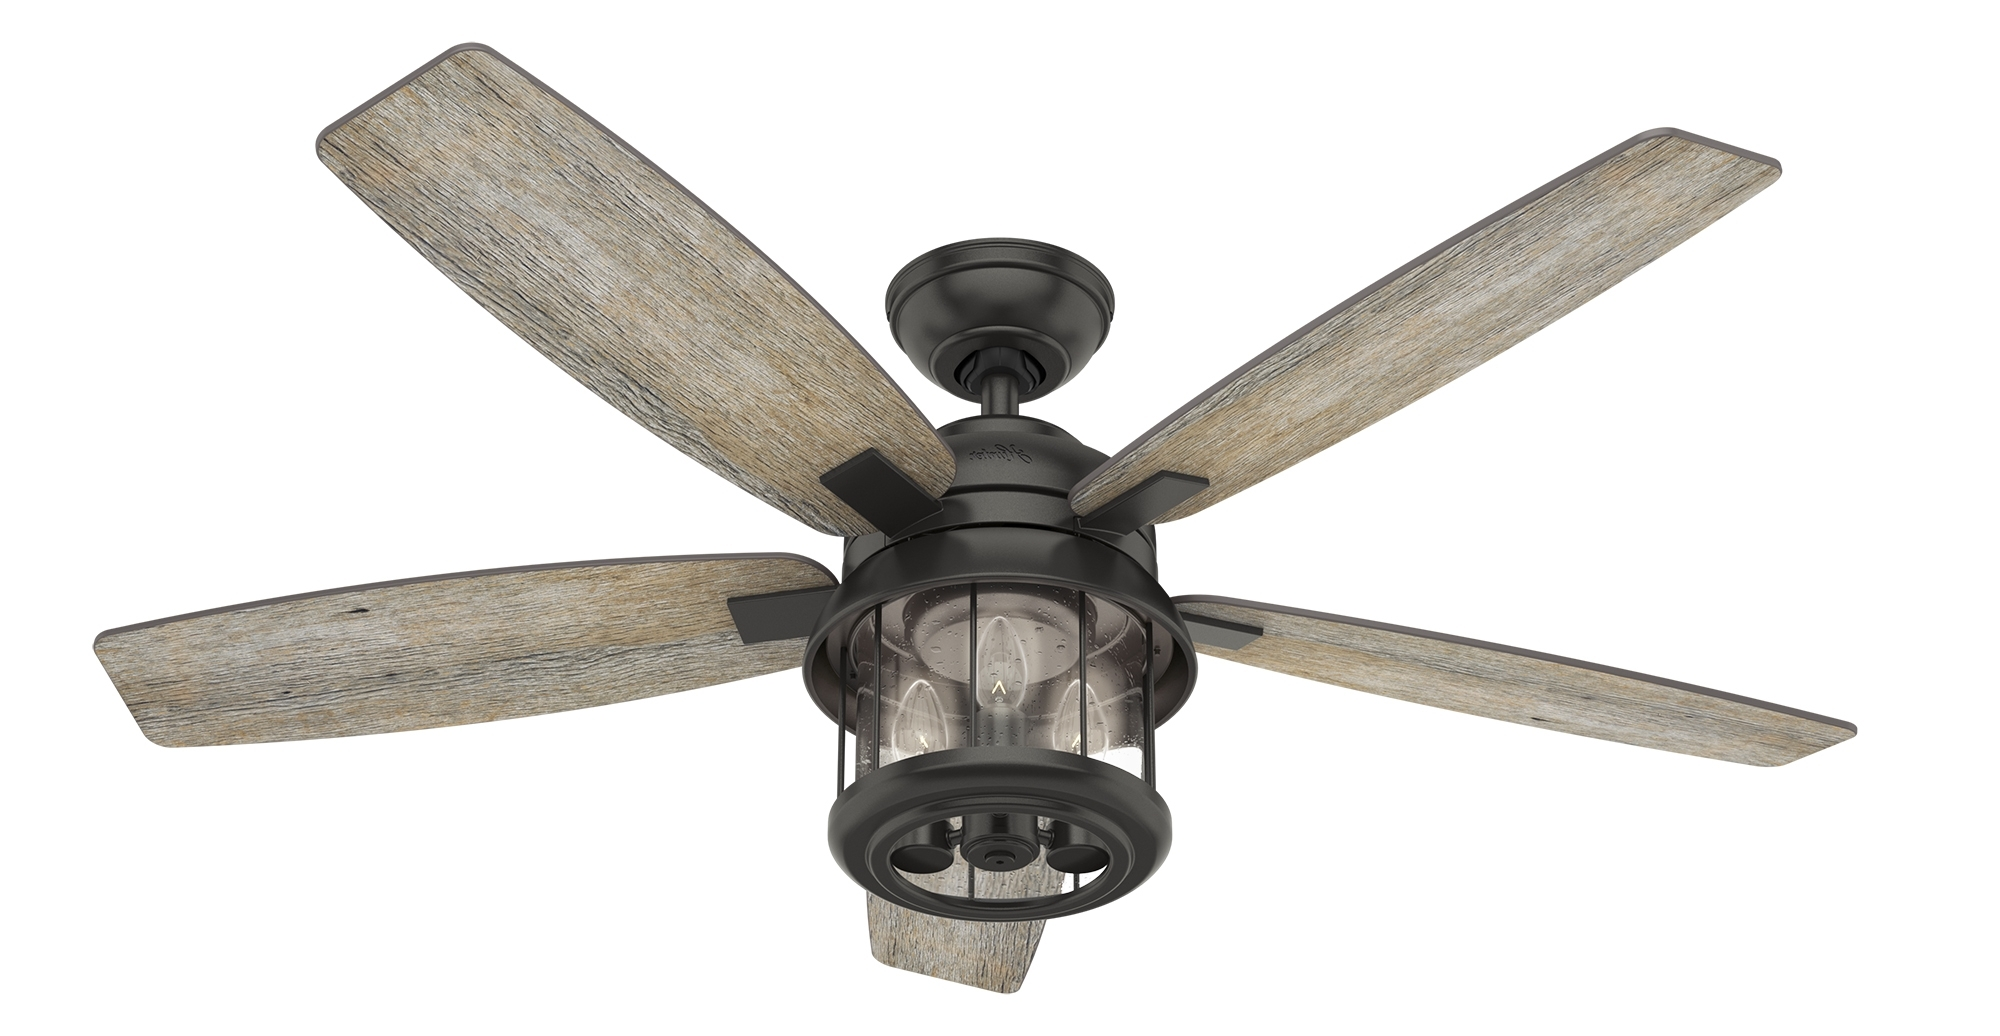 Outdoor Ceiling Fans With Lantern Light Intended For 2019 Coral Bay Lantern Outdoor Ceiling Fan With Led Edison Light – Hunter (View 11 of 20)